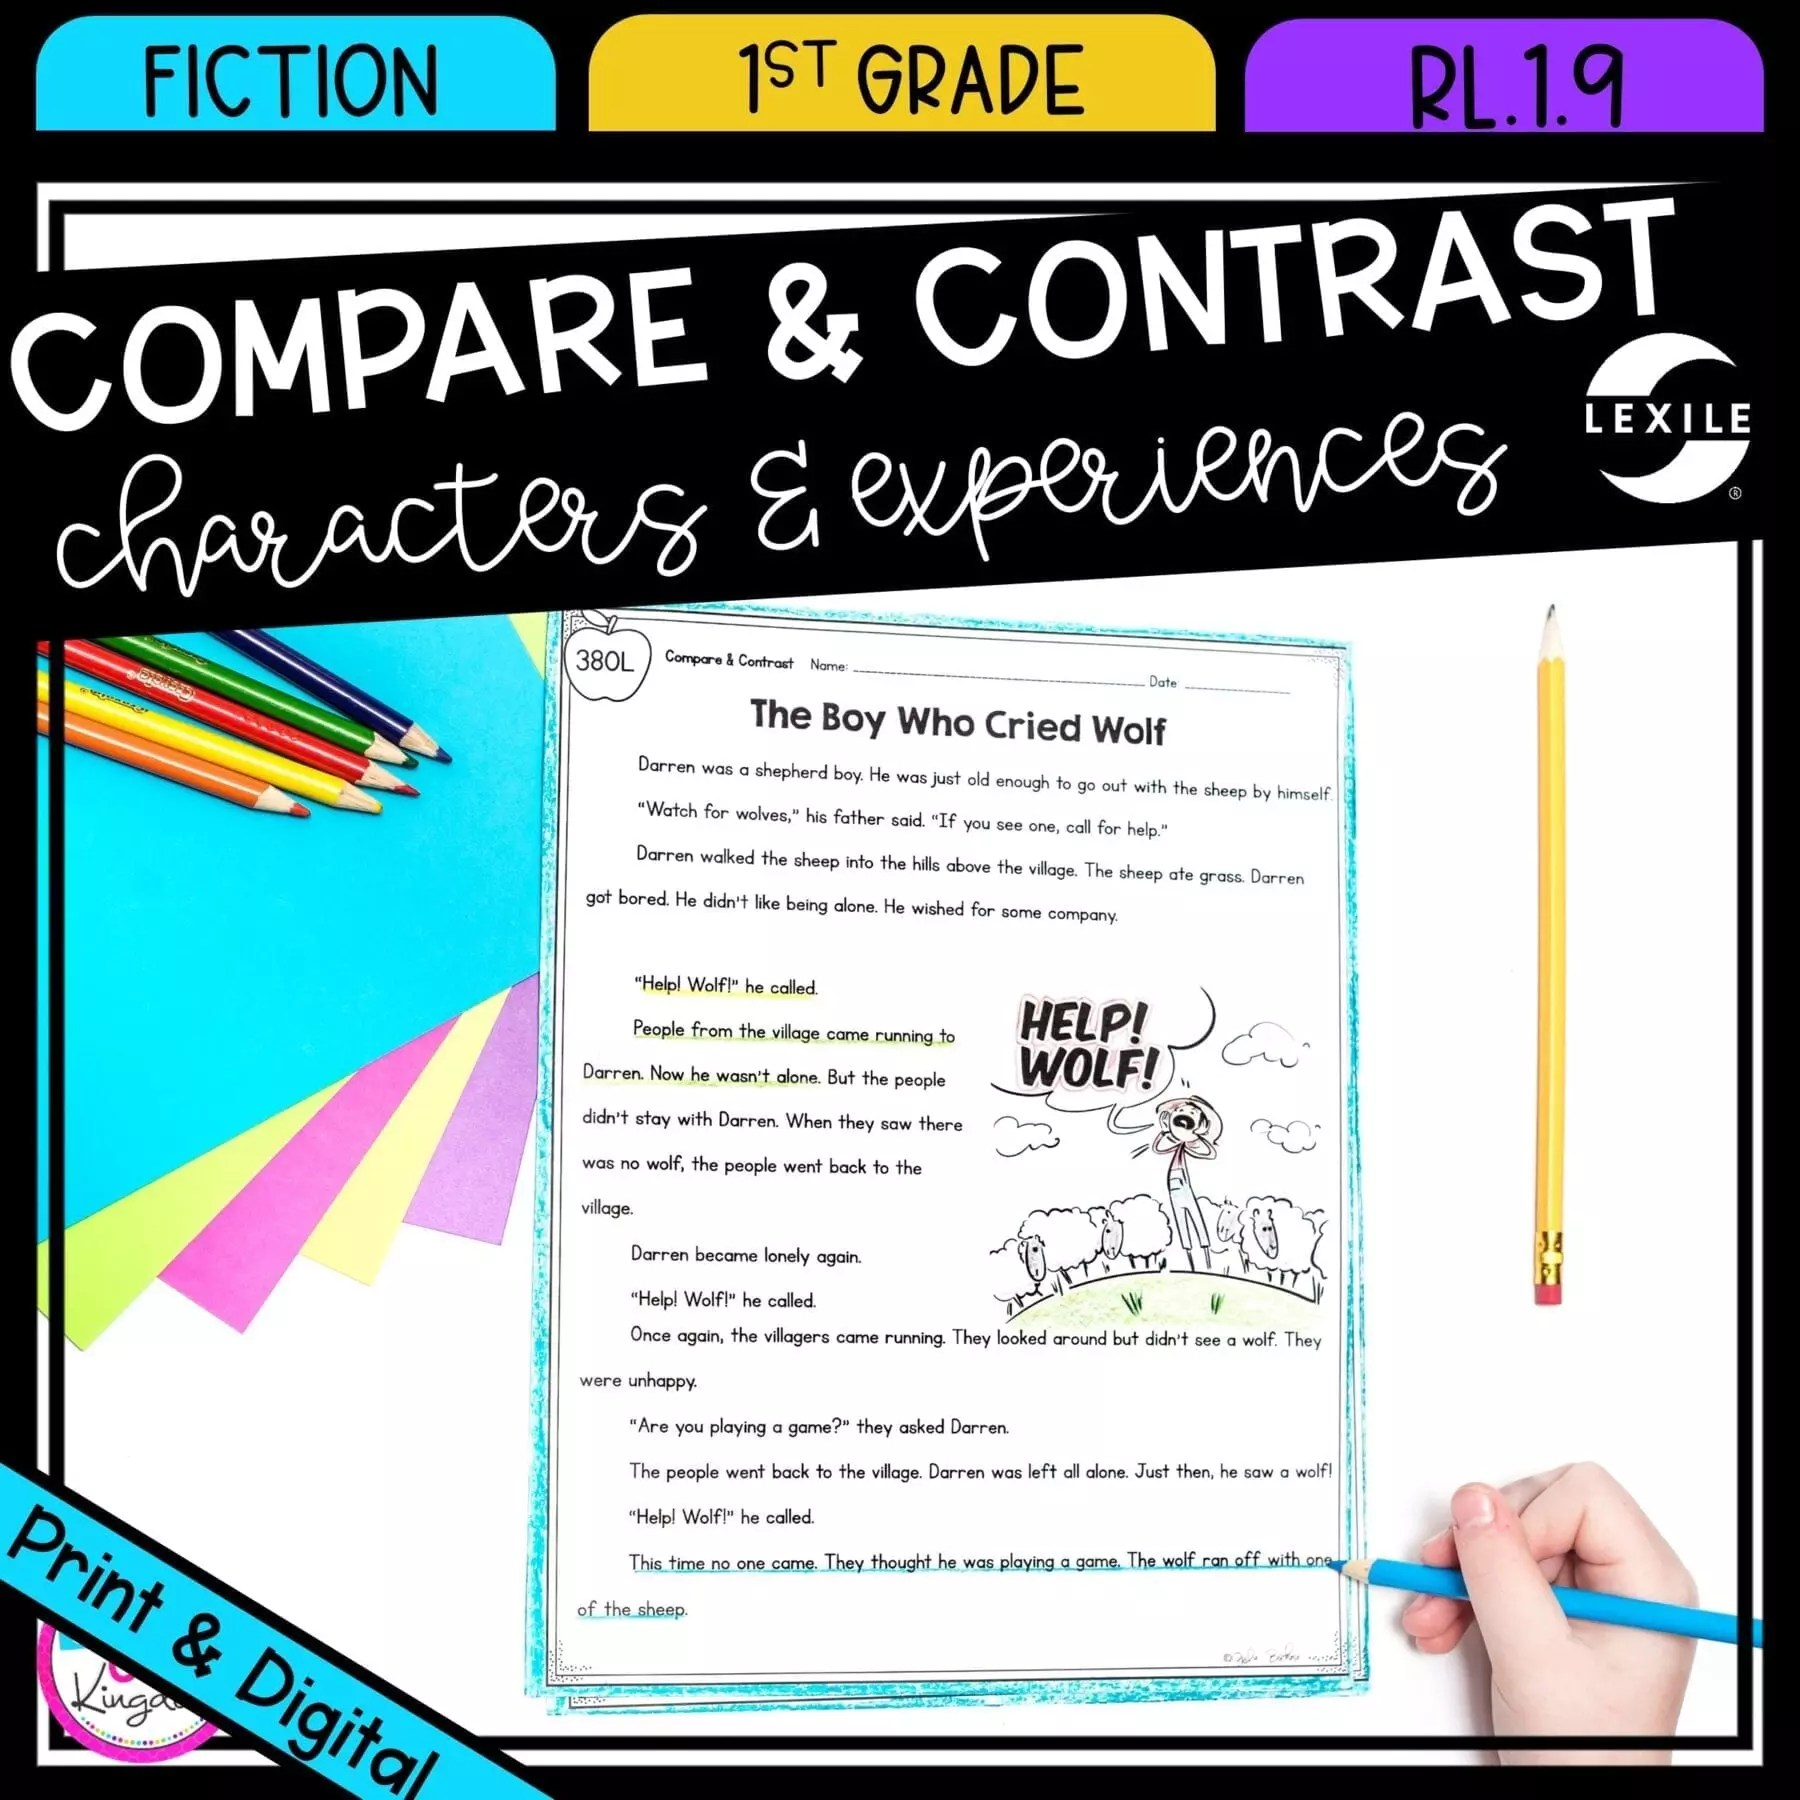 hight resolution of compare contrast stories in fiction RL.1.9   Common Core Kingdom